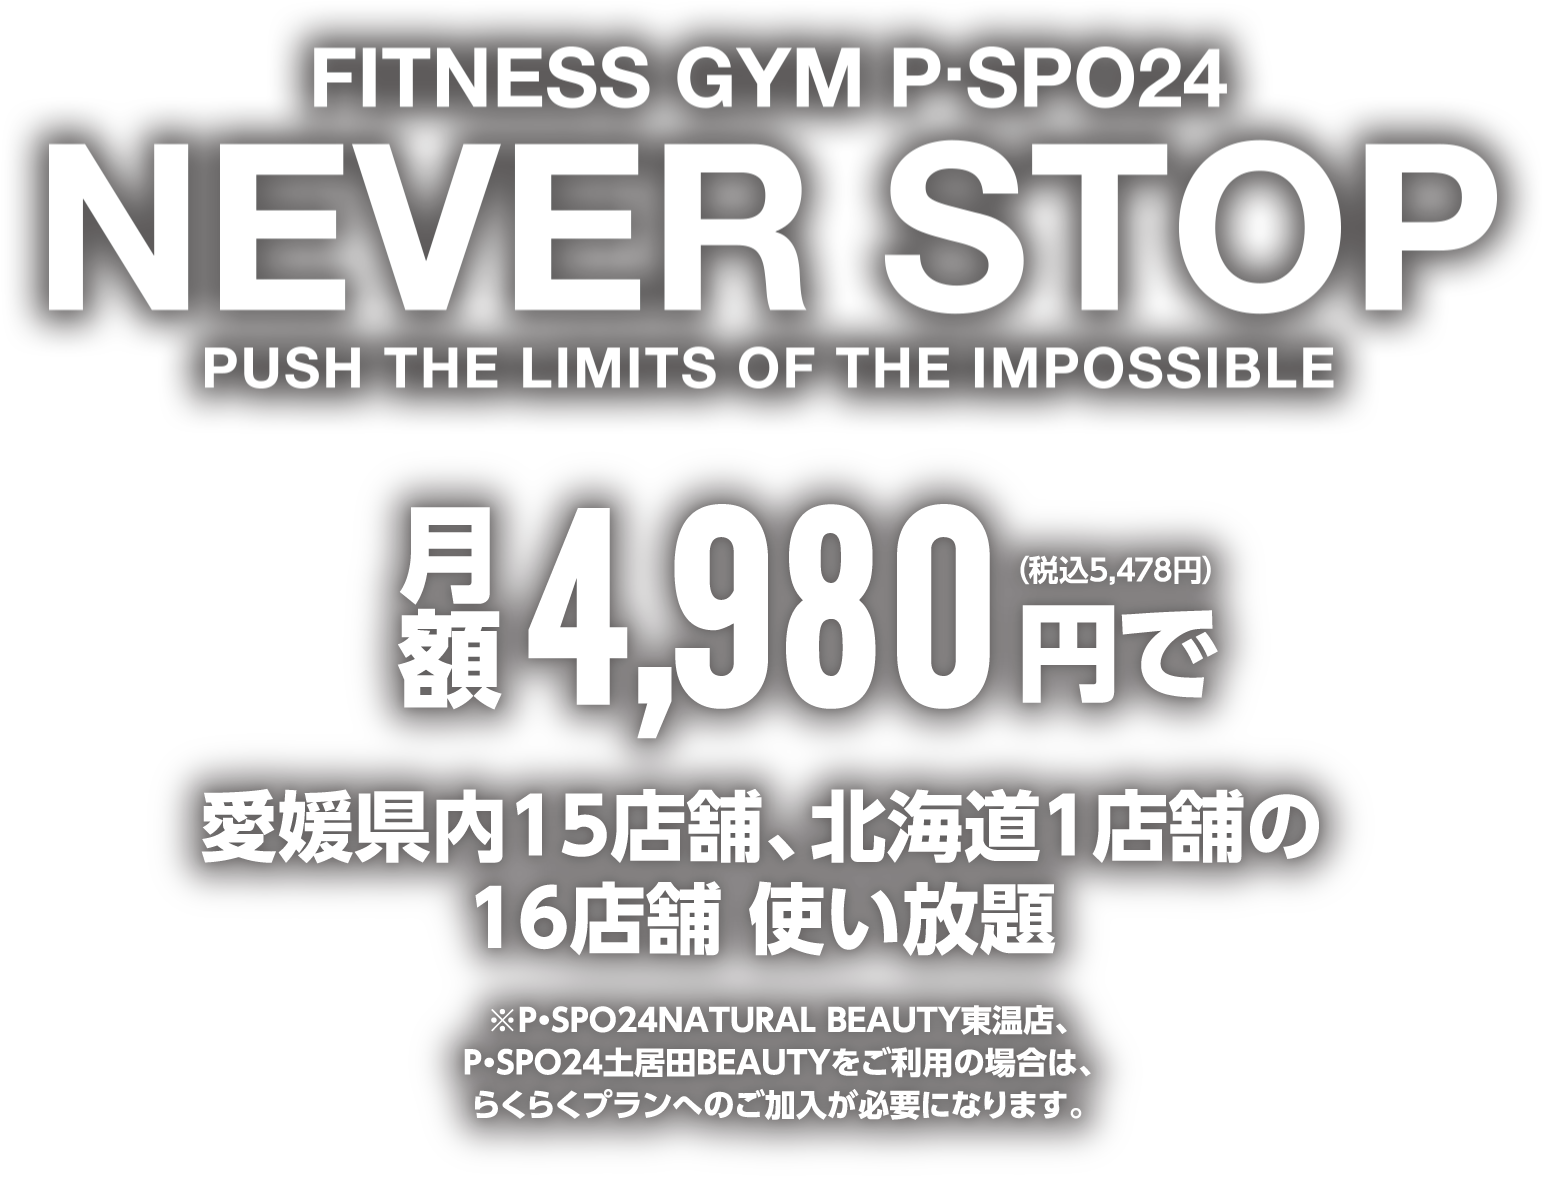 FITNESS GYM P・SPO24 NEVER STOP PUSH THE LIMIT OF THE IMPOSSIBLE